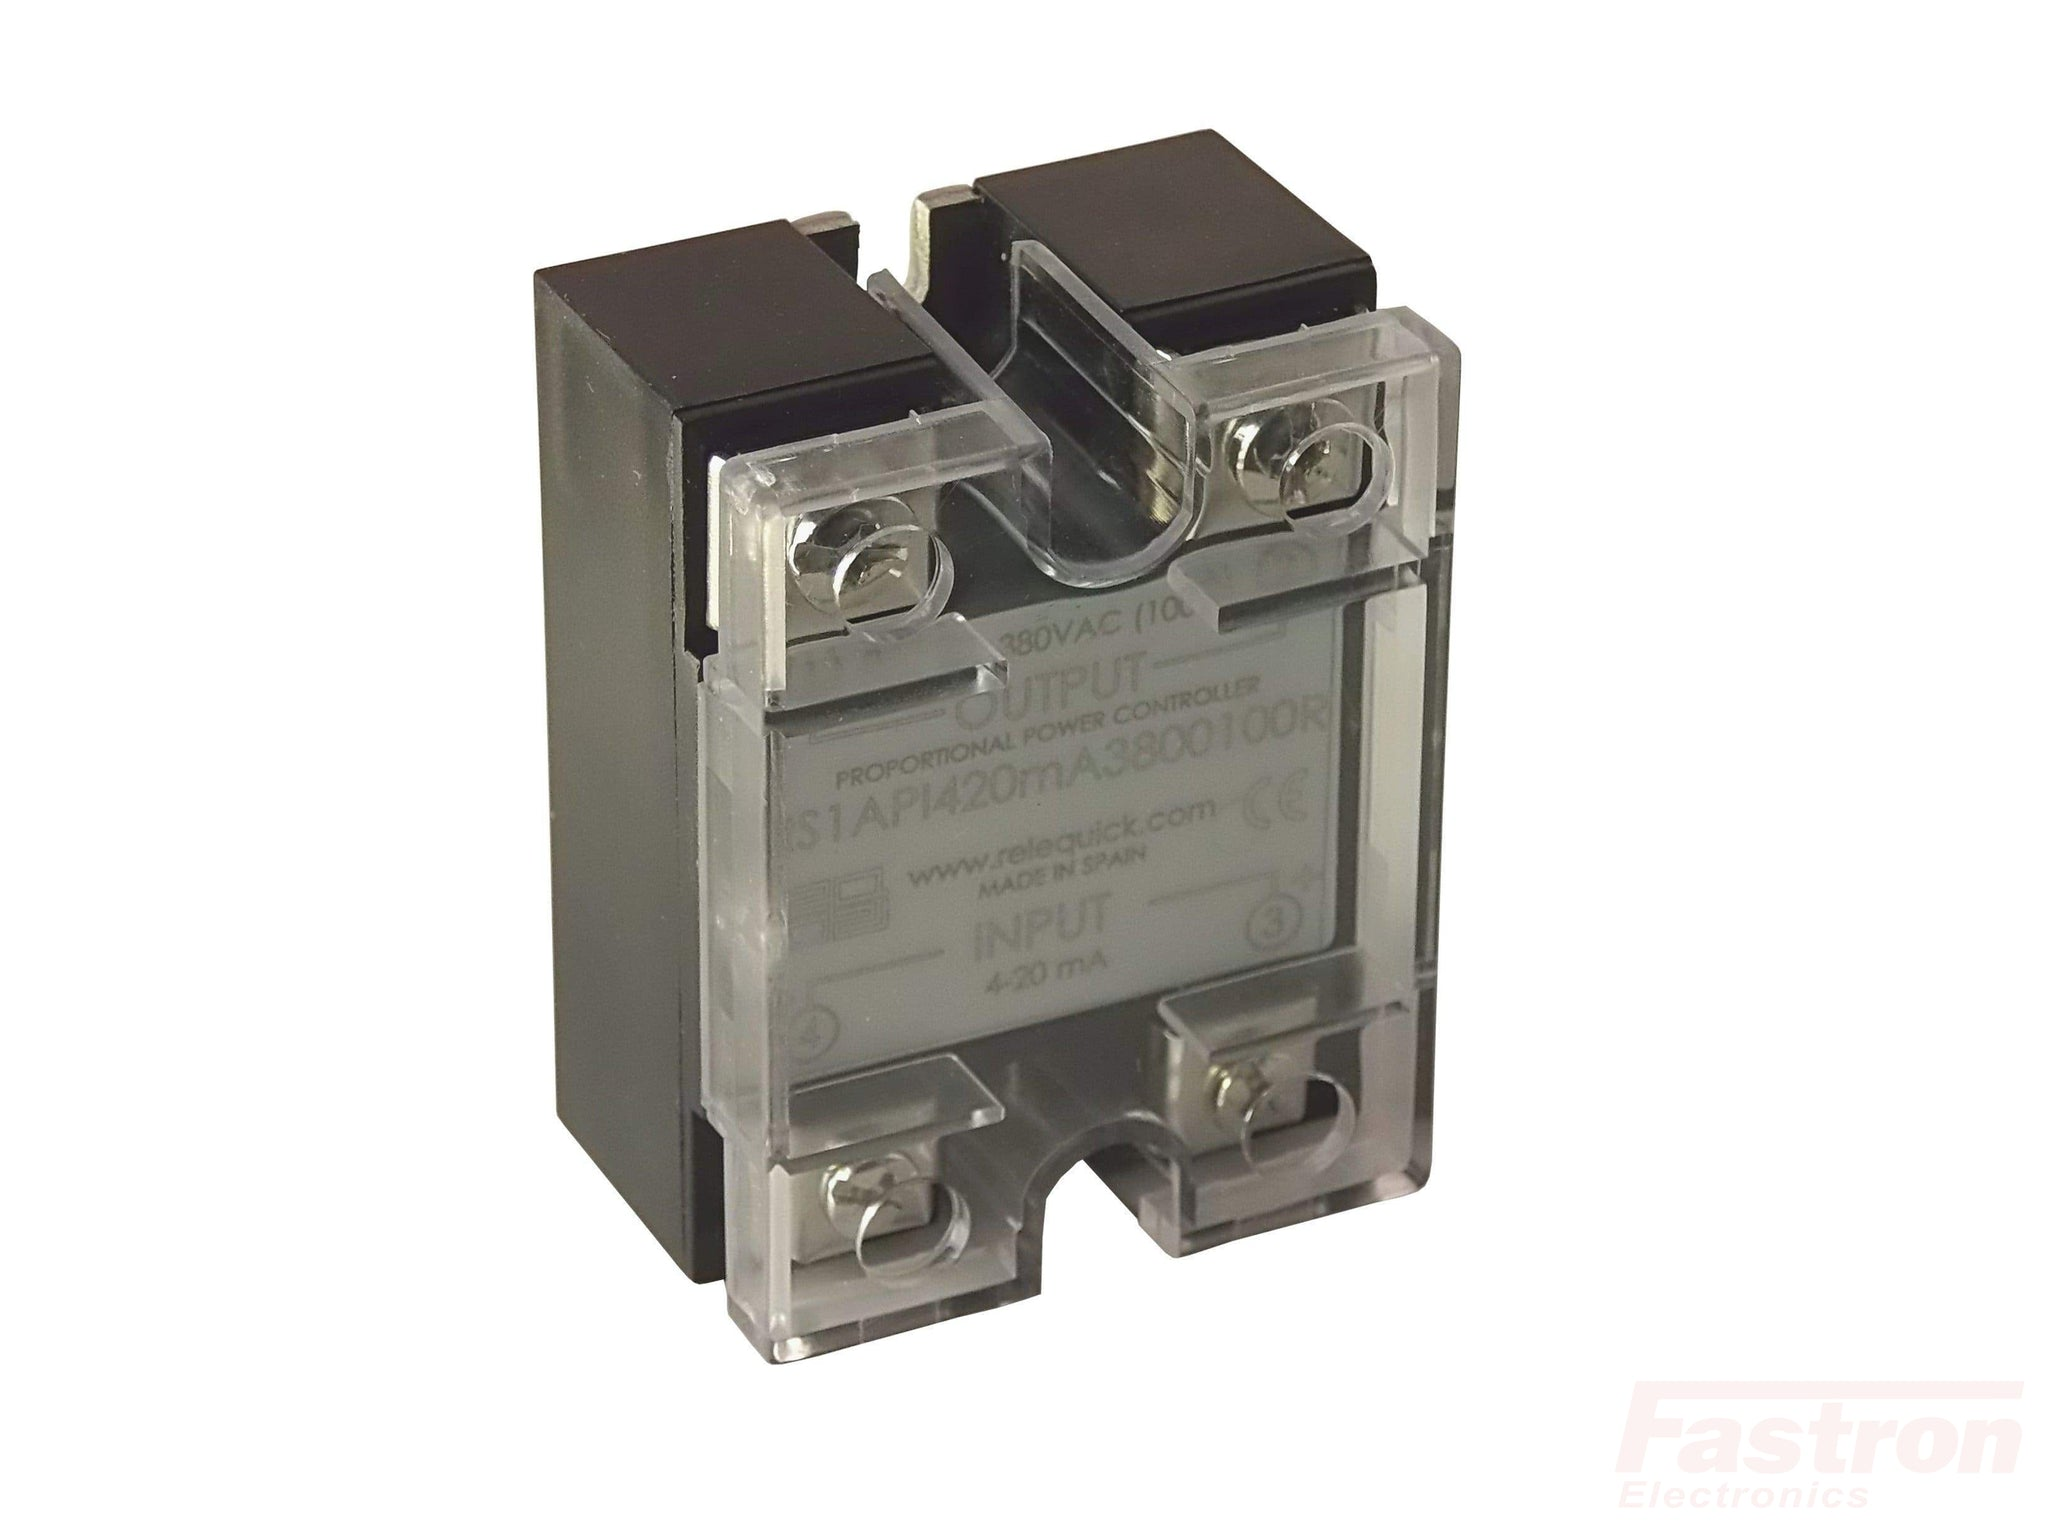 RS1API420MA280060R, Solid State Relay based Integrated Proportional Controller, 4-20mA Input, 240VAC 60Amp Load